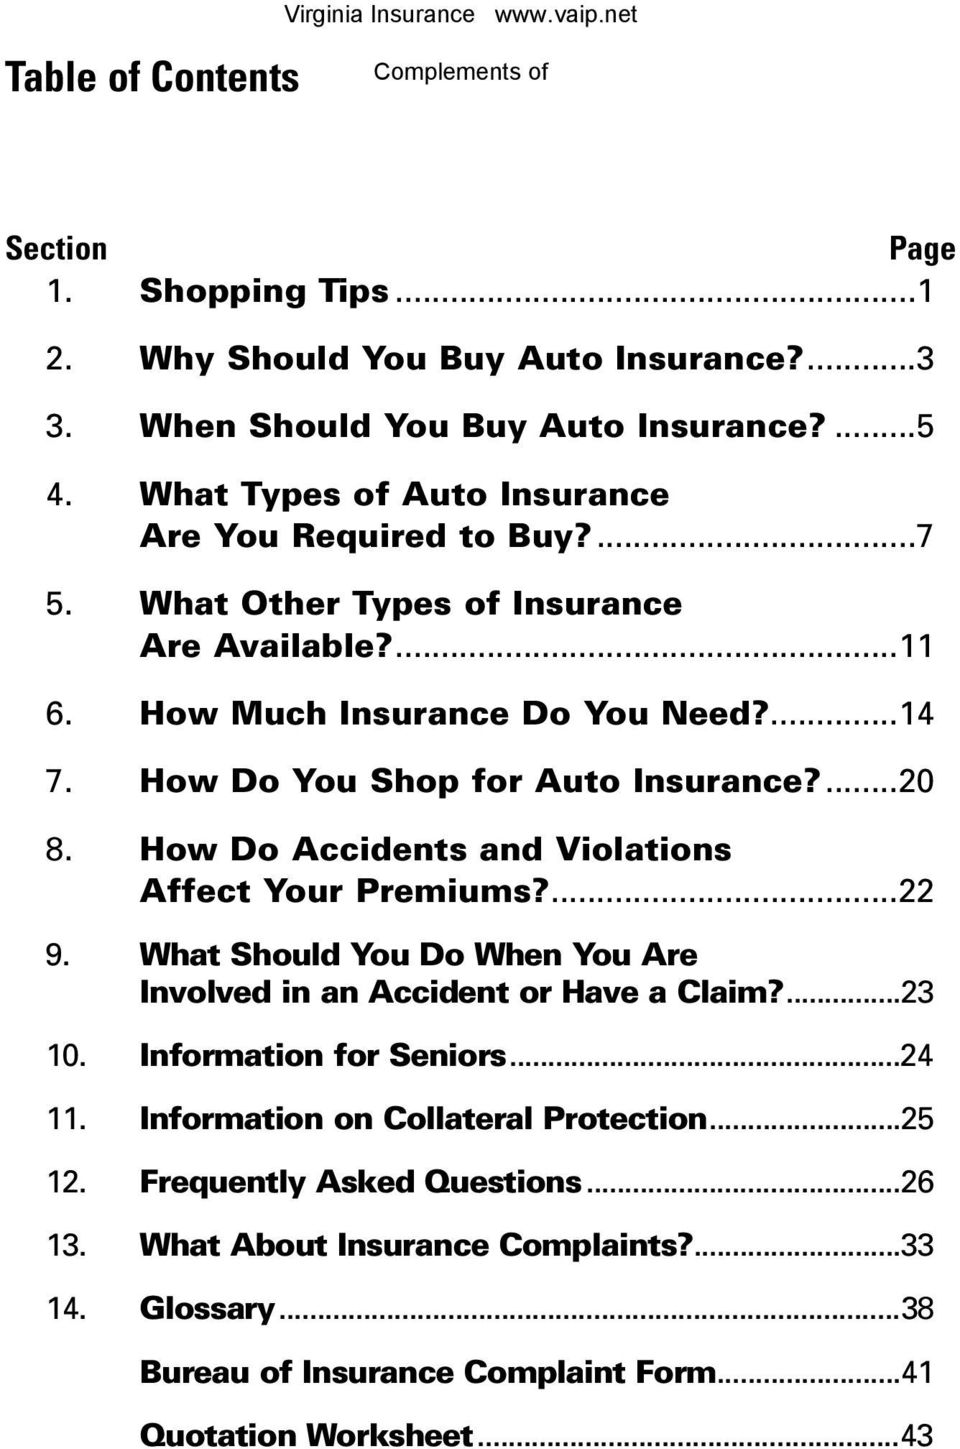 How Do You Shop for Auto Insurance?...20 8. How Do Accidents and Violations Affect Your Premiums?...22 9. What Should You Do When You Are Involved in an Accident or Have a Claim?...23 10.